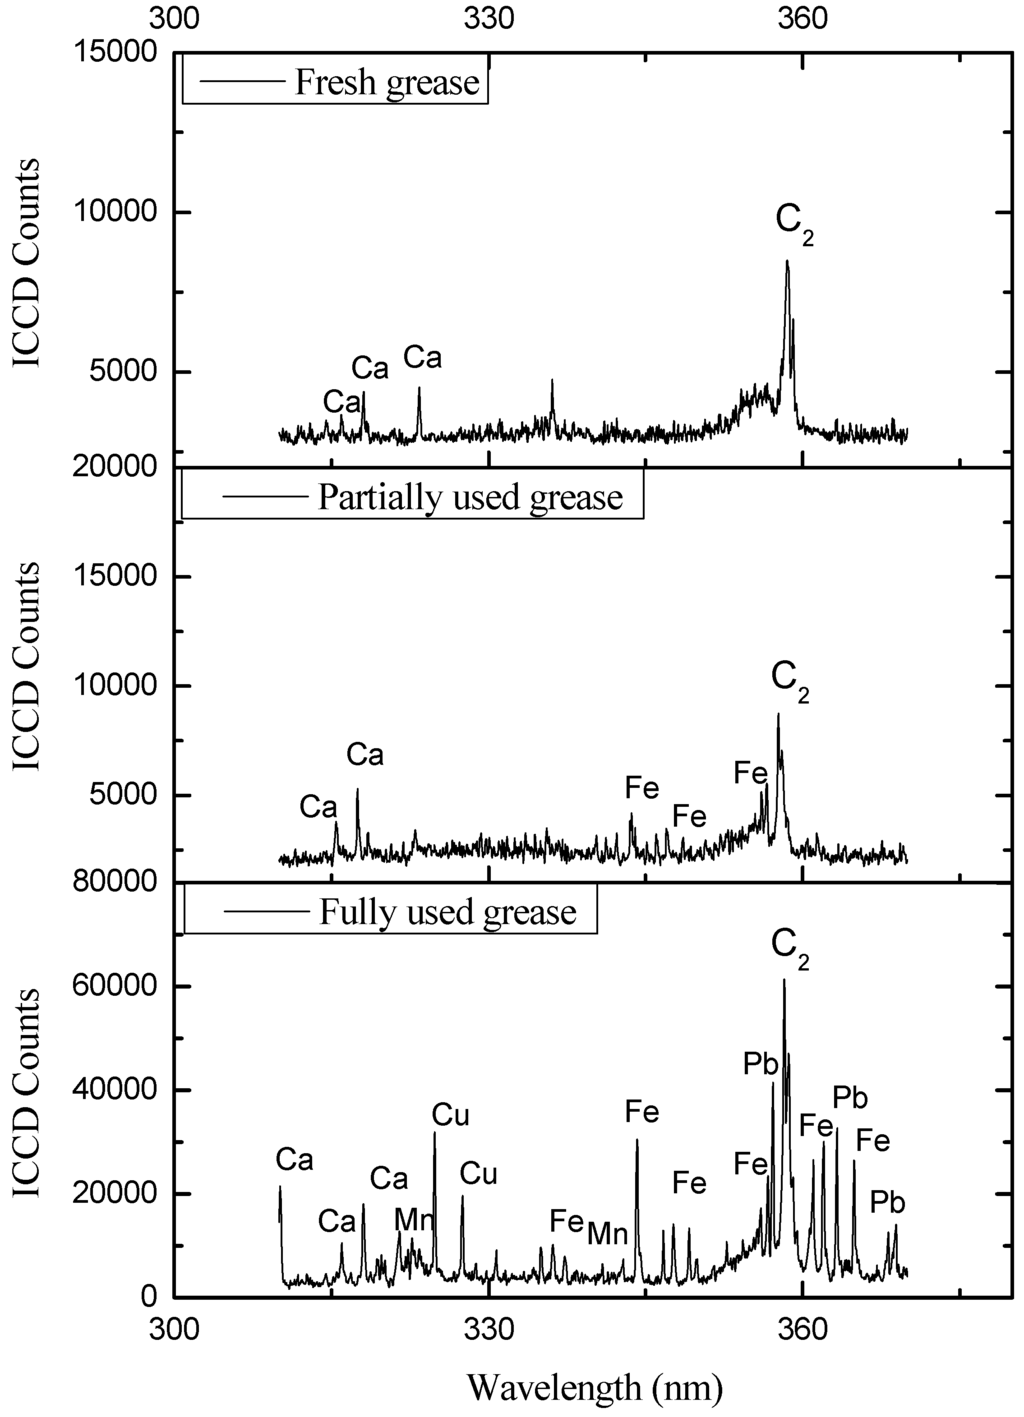 composition of pennies using spectroscopy Asteroids: surface composition from reflection spectroscopy cent) an example is the carbonaceotus chondrites opaques produce low re-flectances throughoult the.